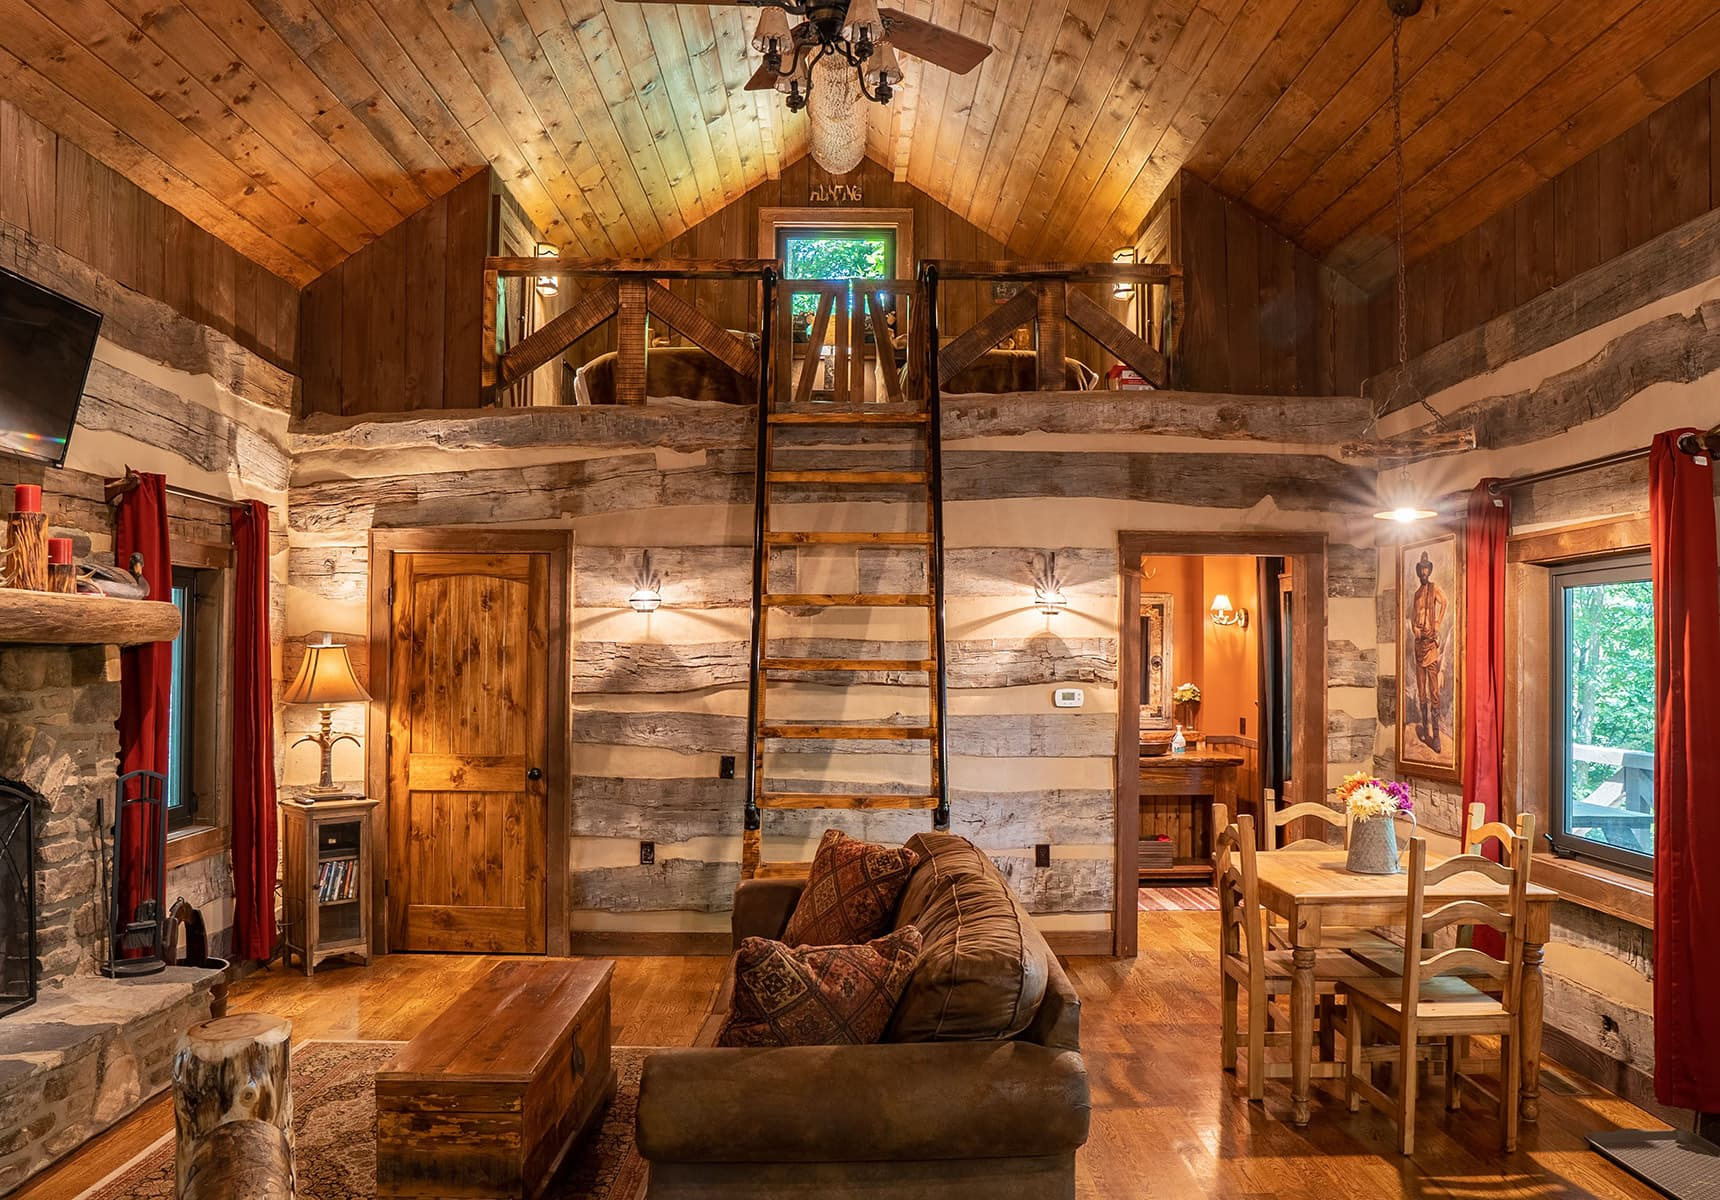 Wilderness Lodge interior living space with a sleeper sofa and a loft accessible by a wide ladder - West Virginia Cabin